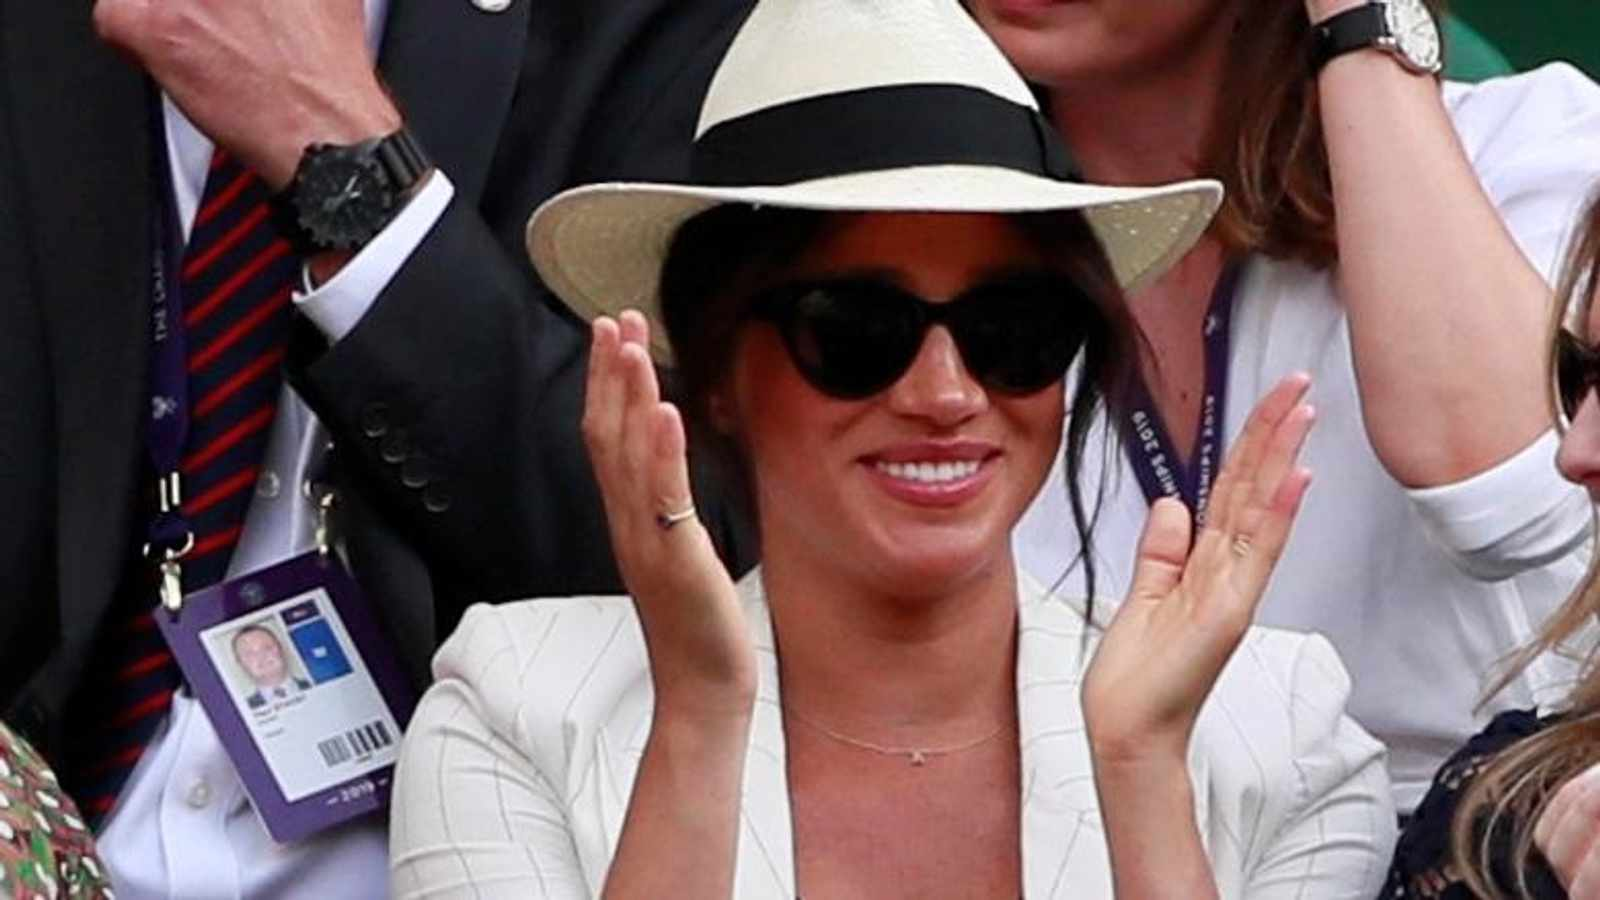 No Meghan Markle snaps for tennis fans